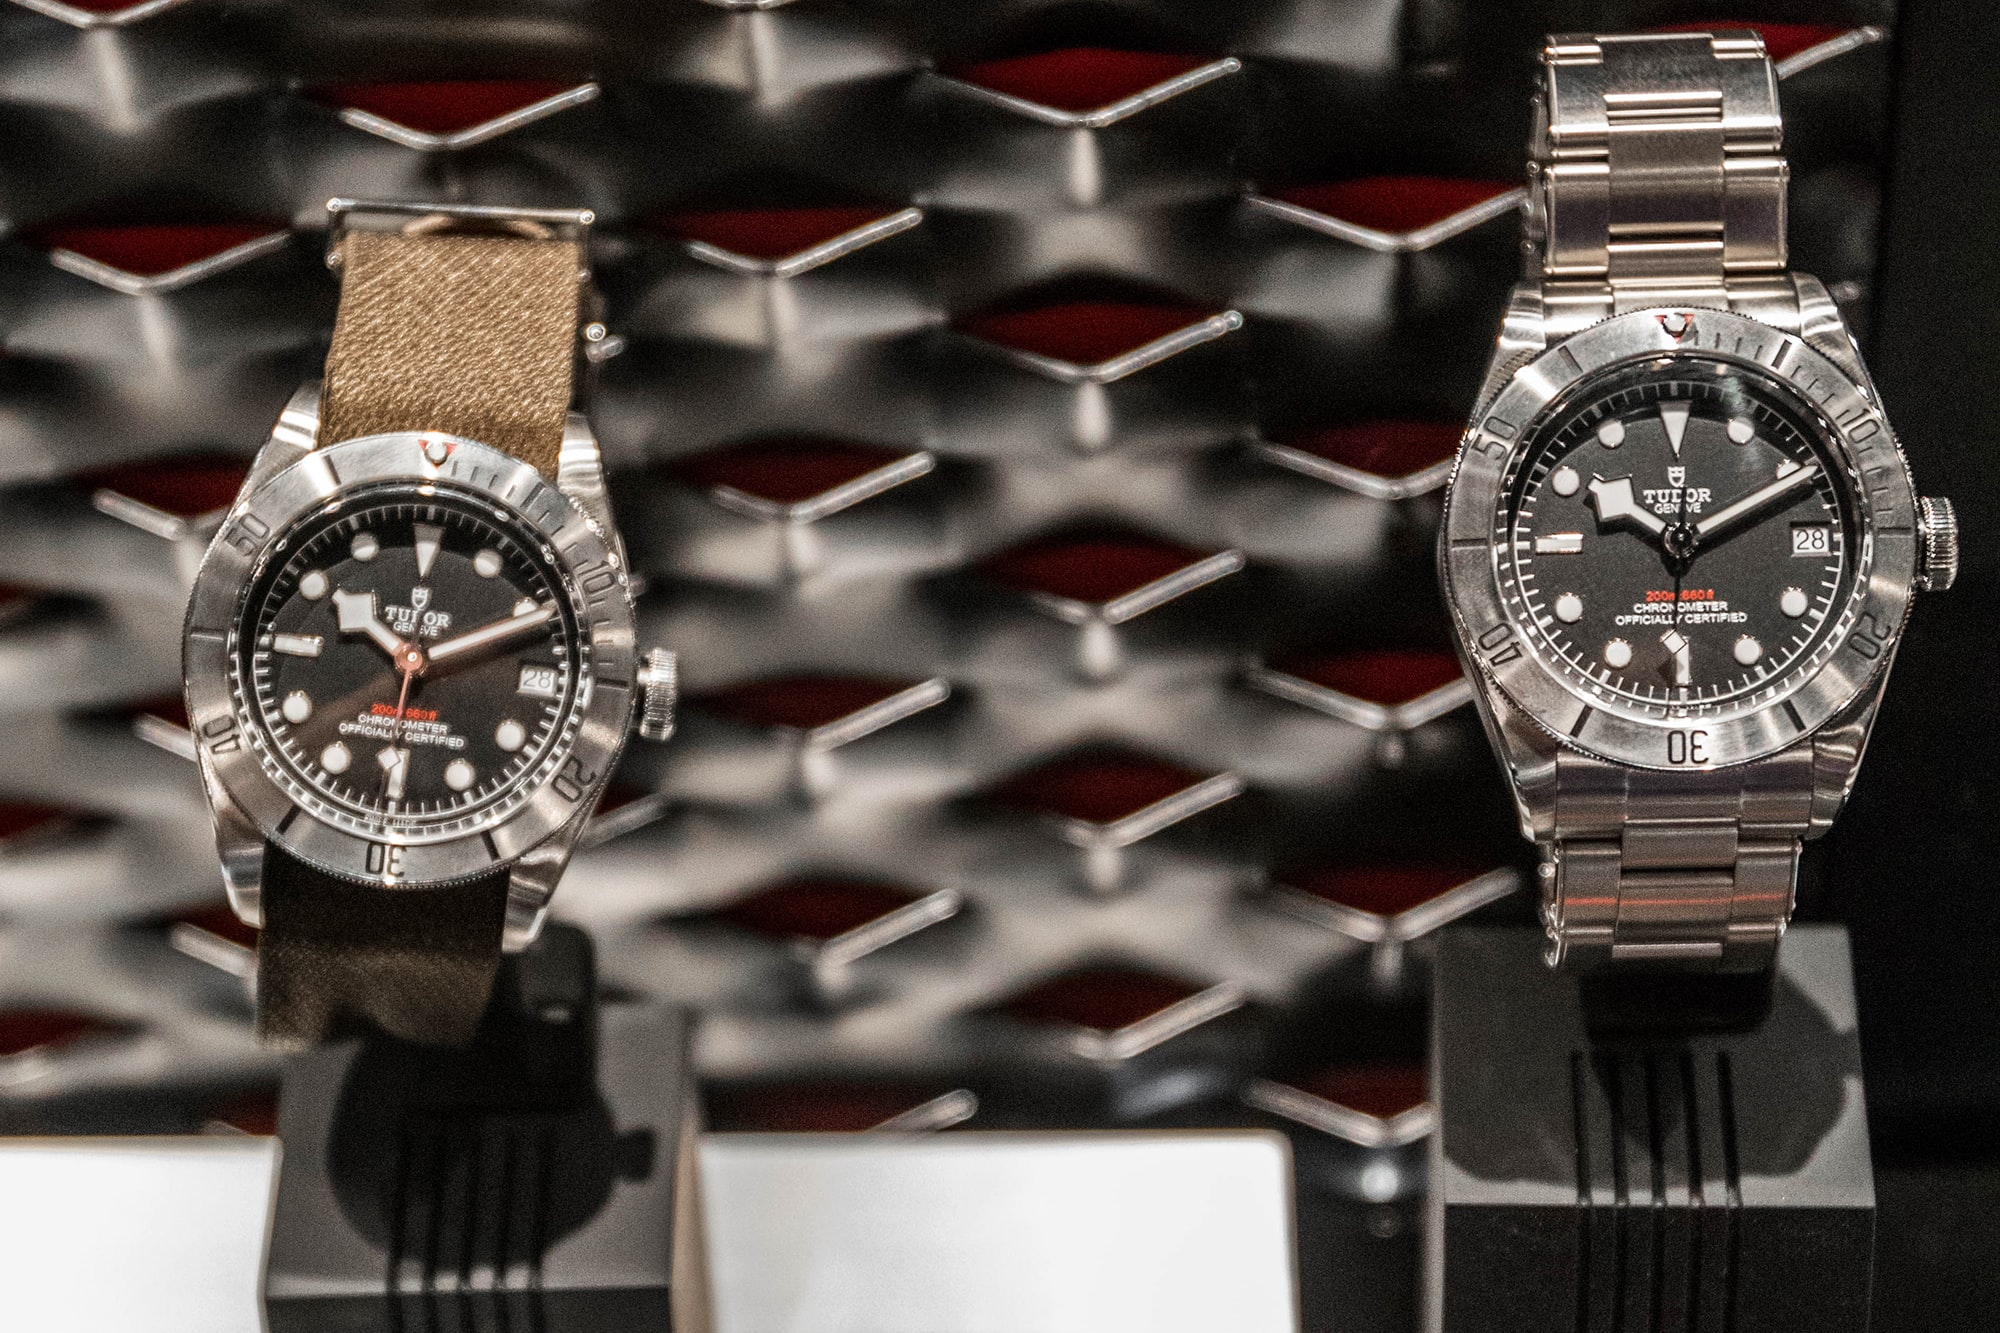 Photo Report: The Tudor Baselworld Novelties At Swiss Fine Timing In Chicago Photo Report: The Tudor Baselworld Novelties At Swiss Fine Timing In Chicago  Watches only 11